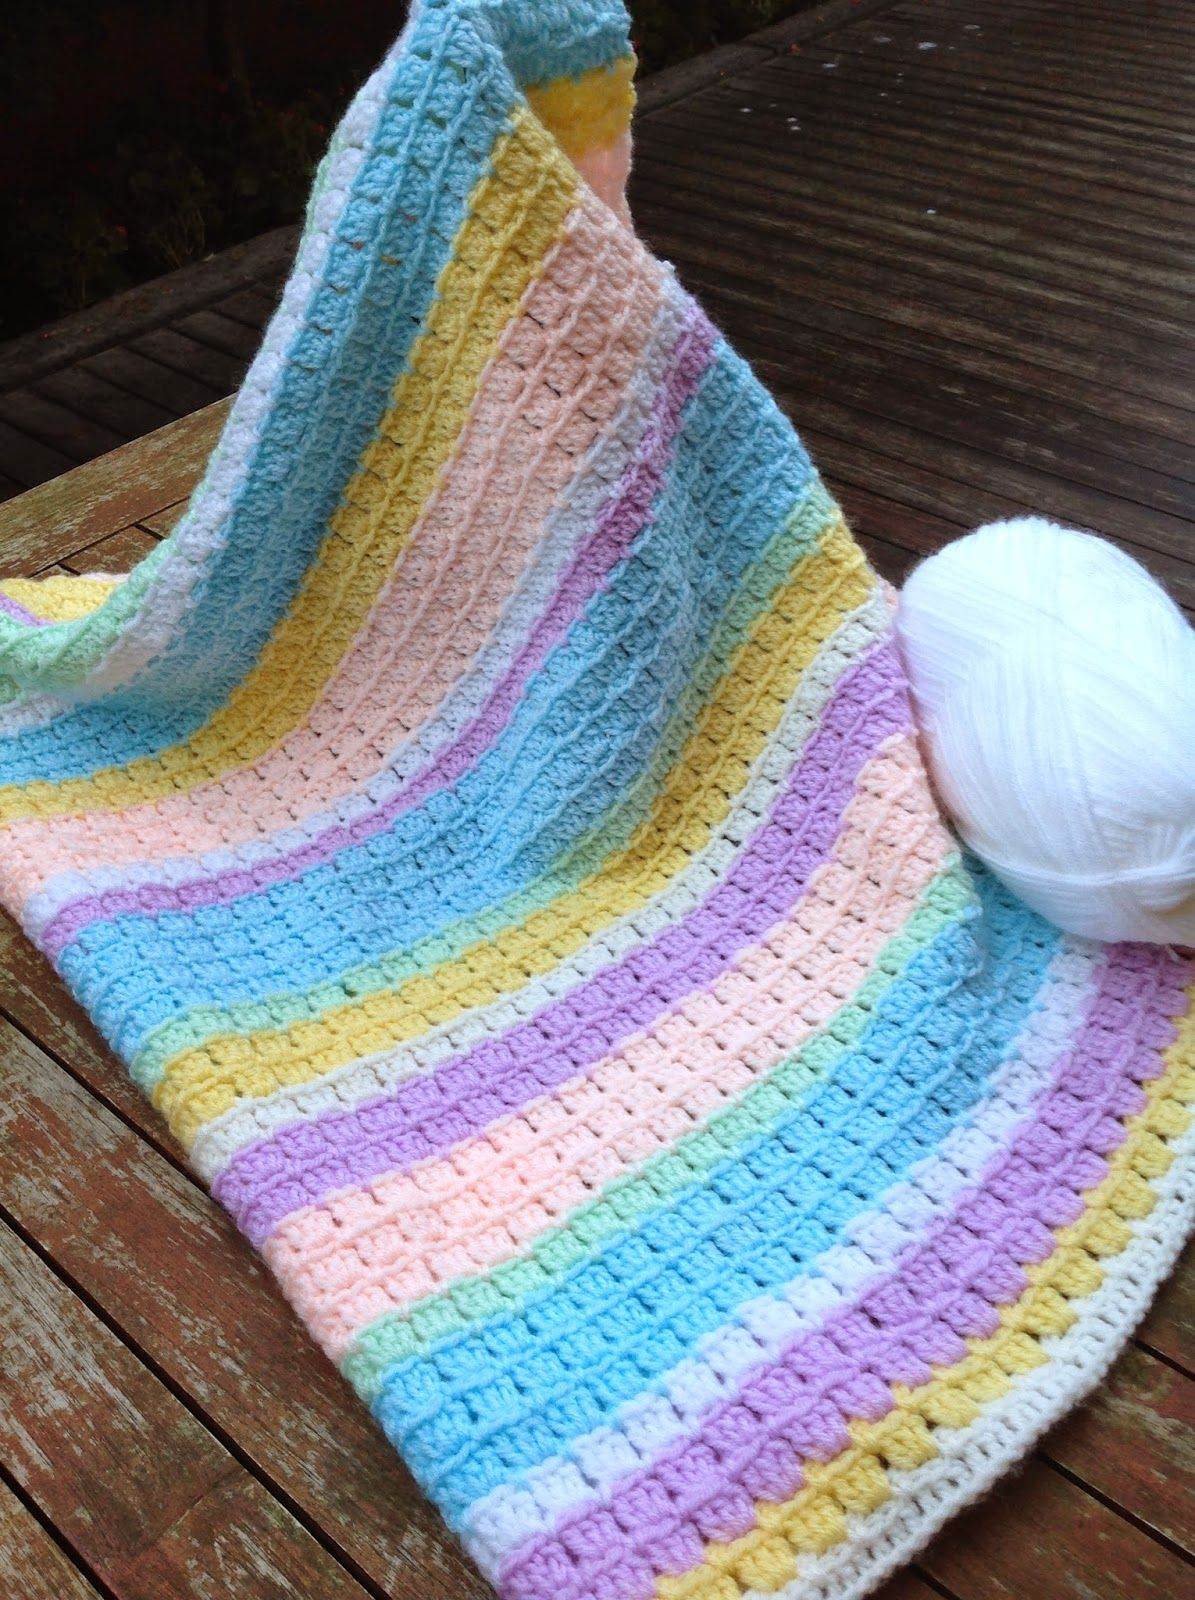 Pin by Carolyn Young on Crochet Afghans Pinterest Crochet